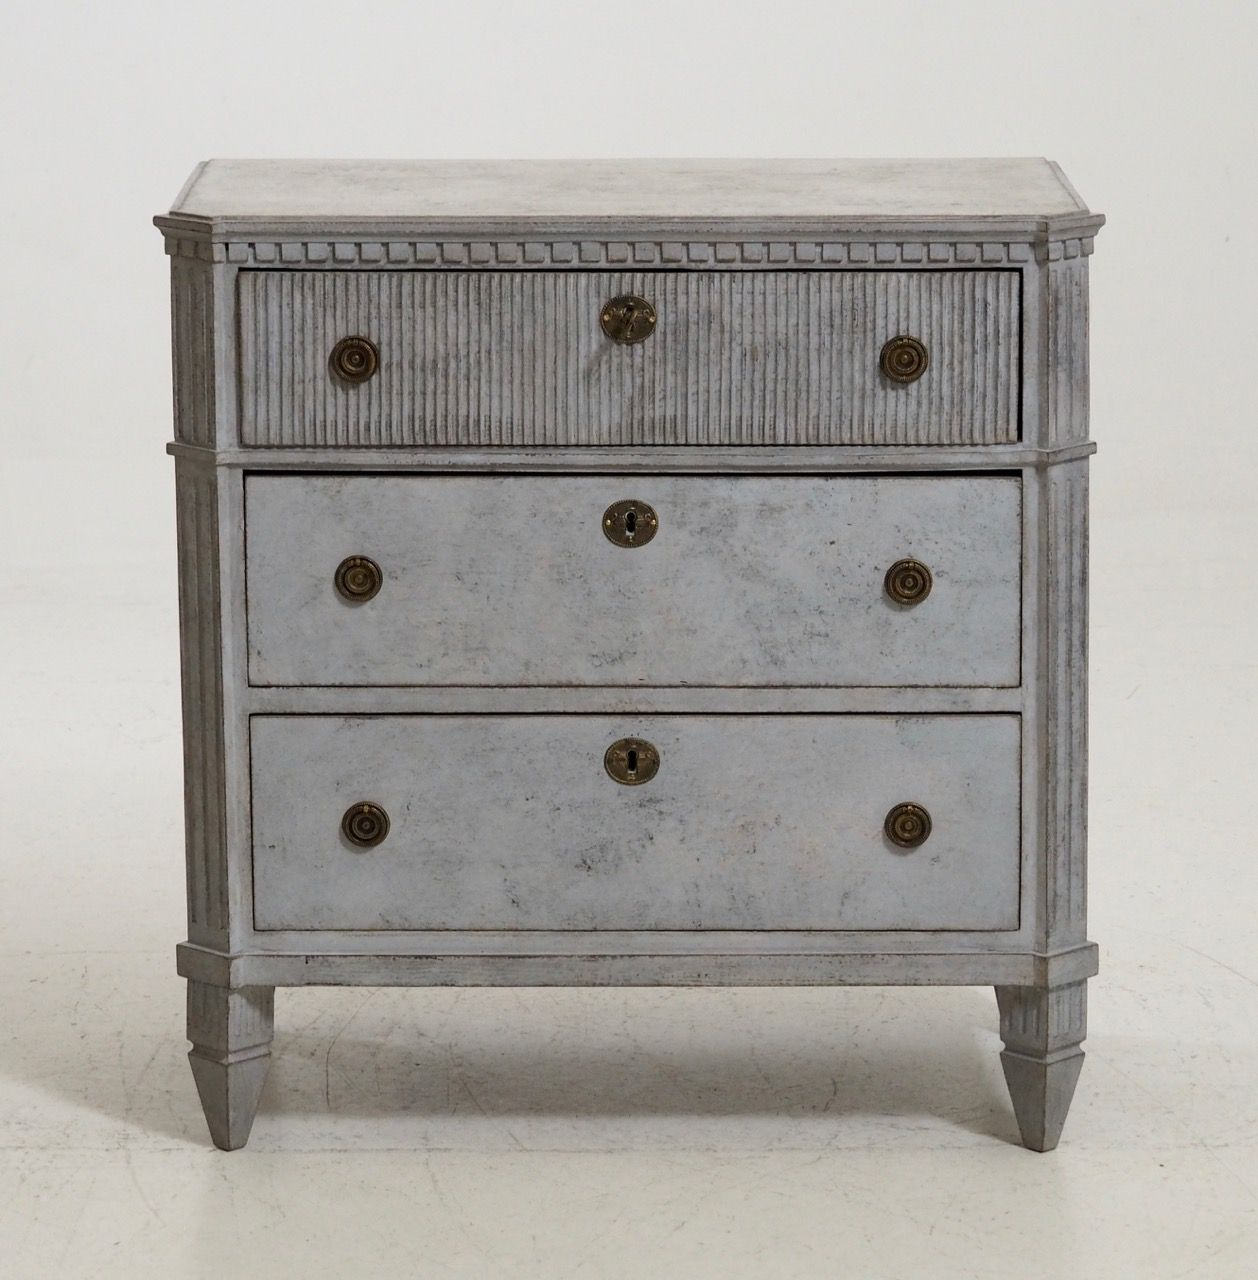 Antique Gustavian Style Chest of Drawers with Old Lock and Key - Antique Gustavian Style Chest Of Drawers With Old Lock And Key